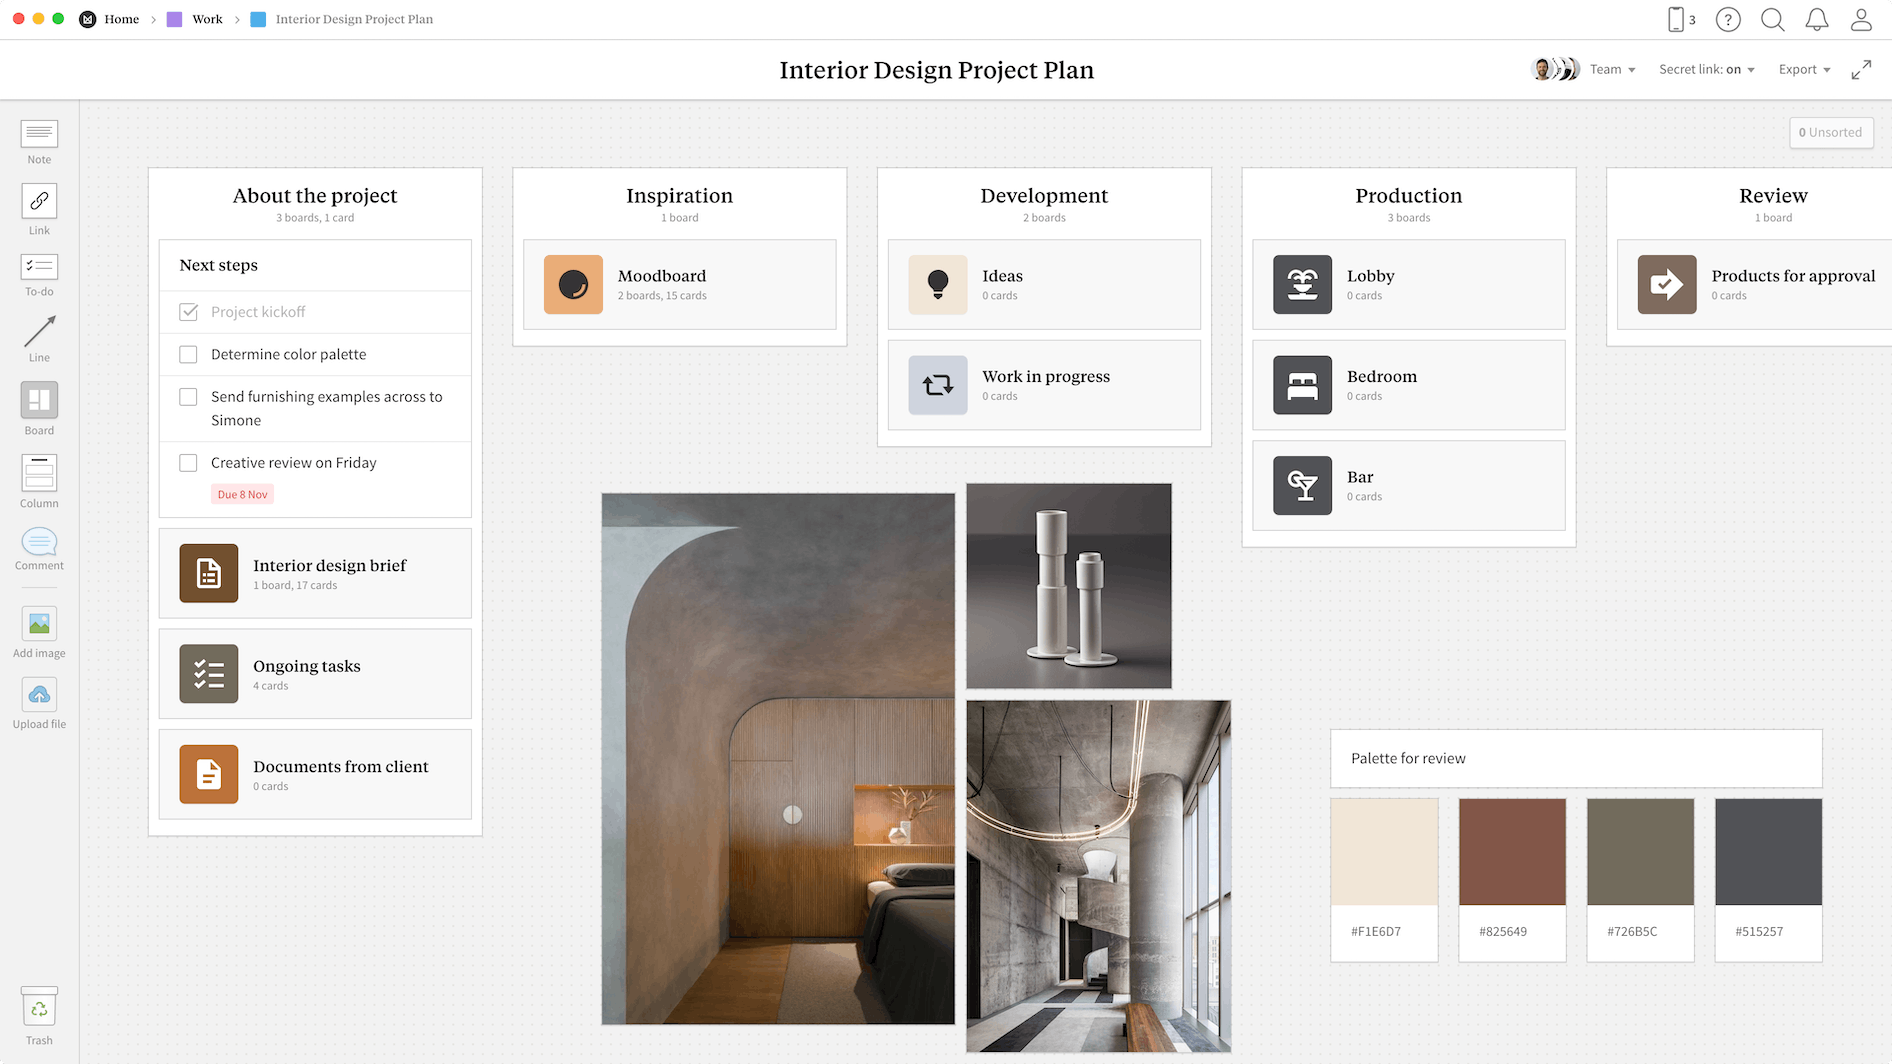 Interior Design Project Plan Template, within the Milanote app